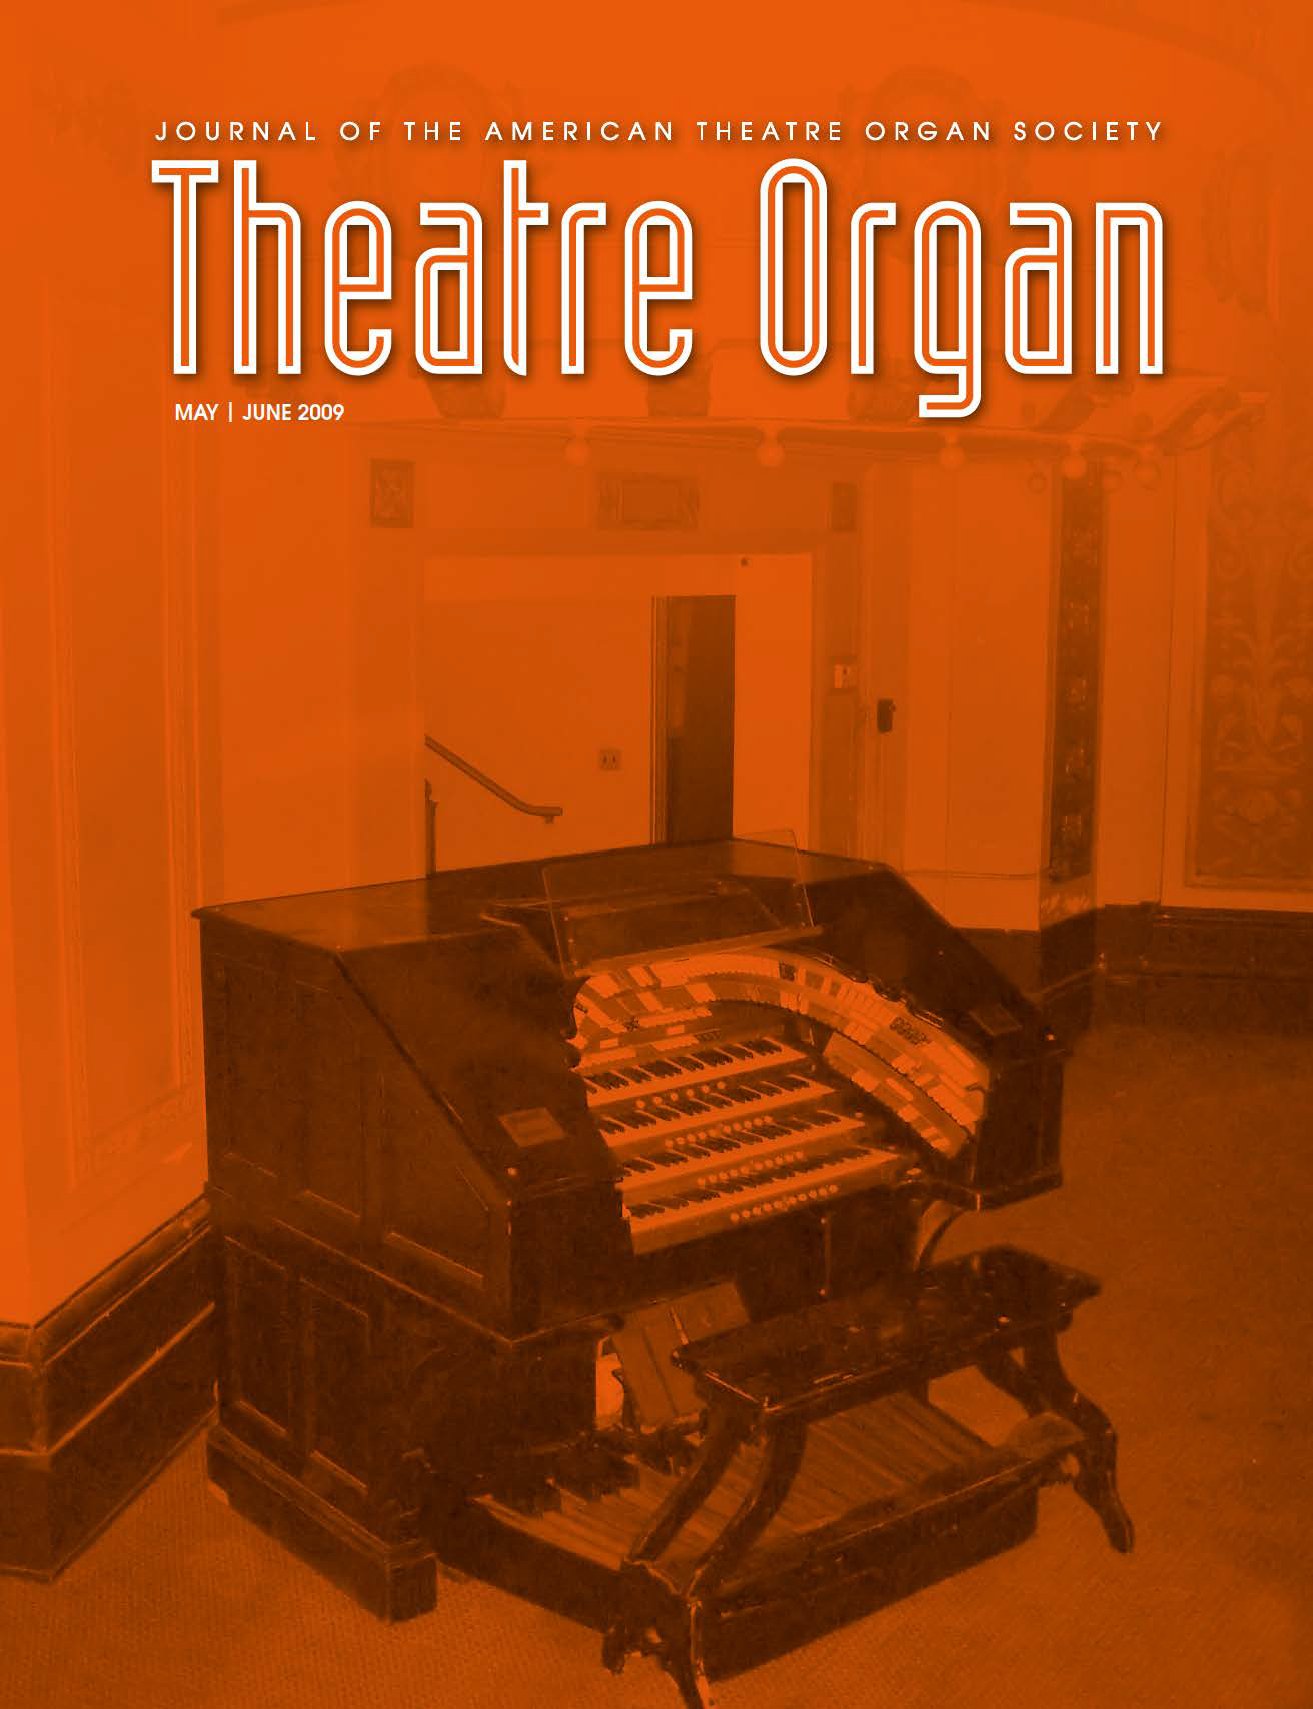 Theatre Organ, May - June 2009, Volume 51, Number 3